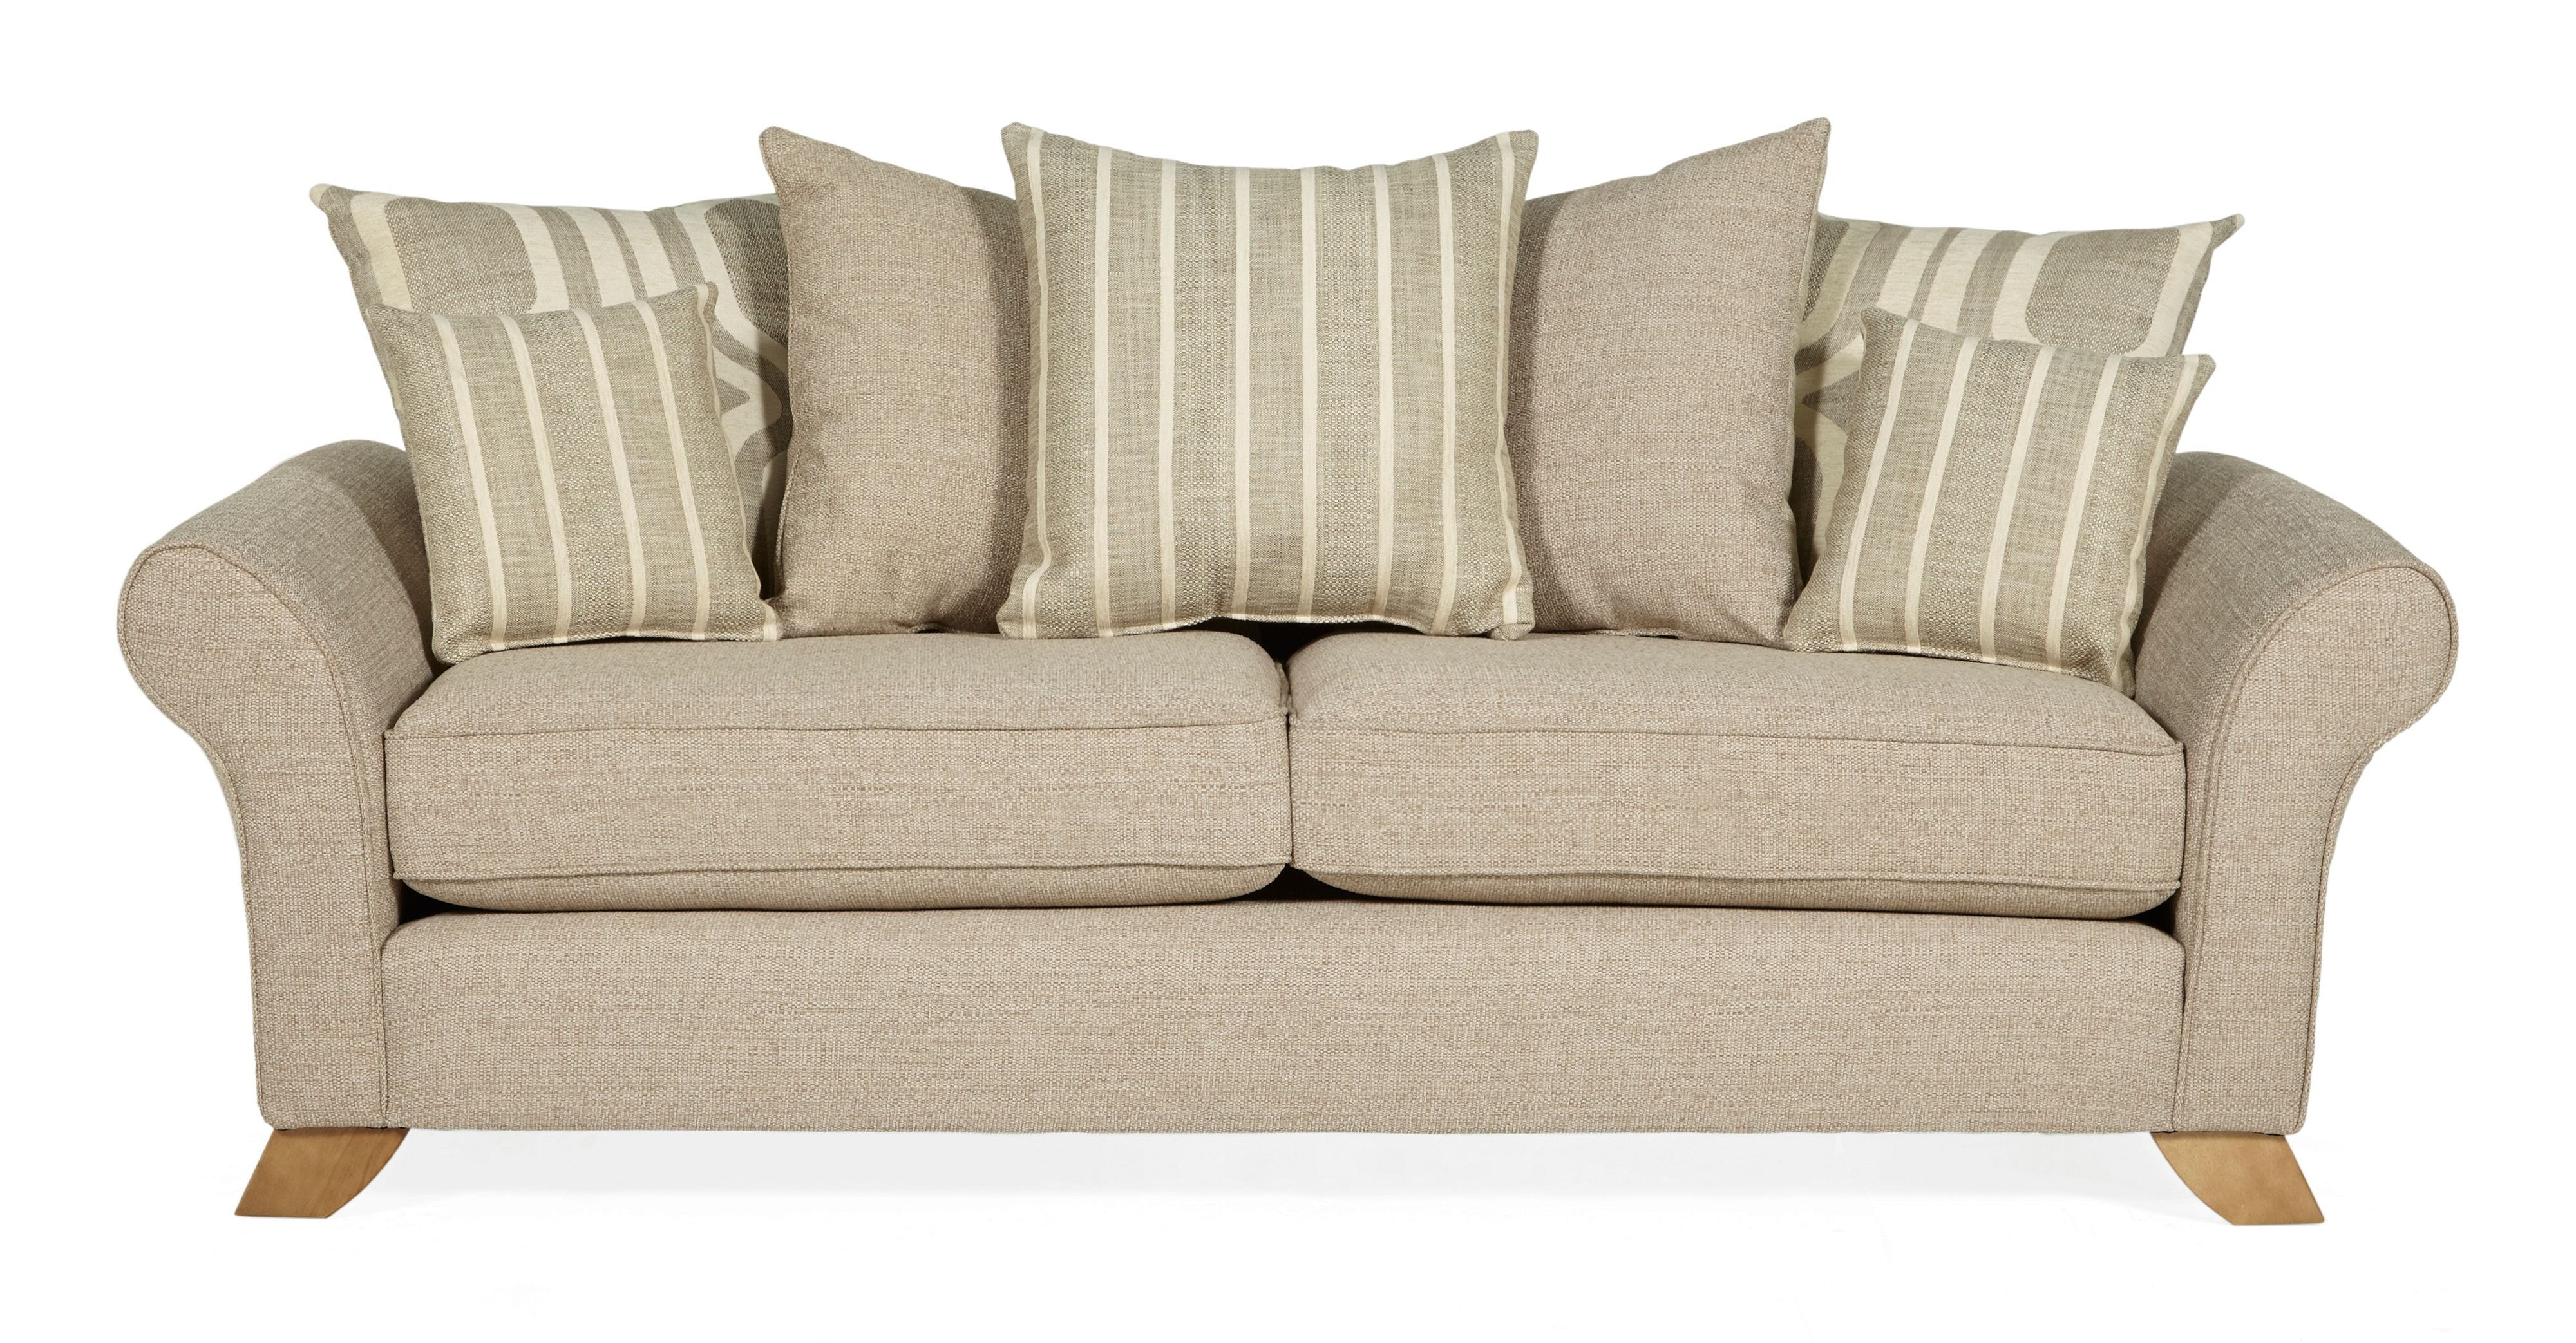 house of fraser linea sofa review best rated leather lauren 3 seater scatter back